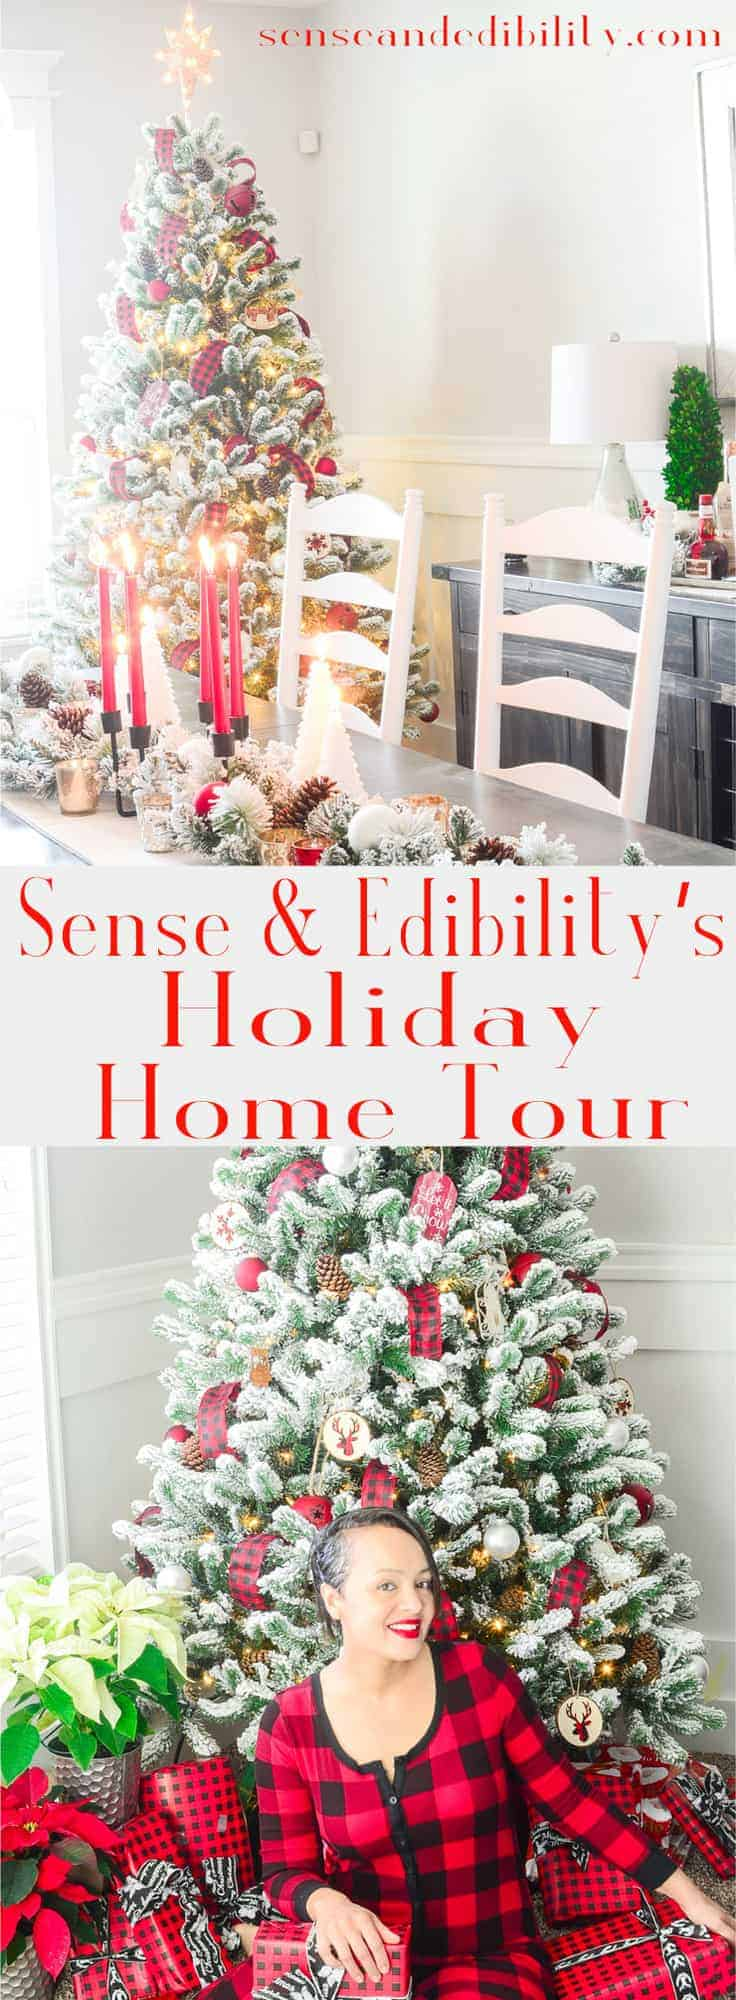 Sense & Edibility's Holiday Home Tour Pin